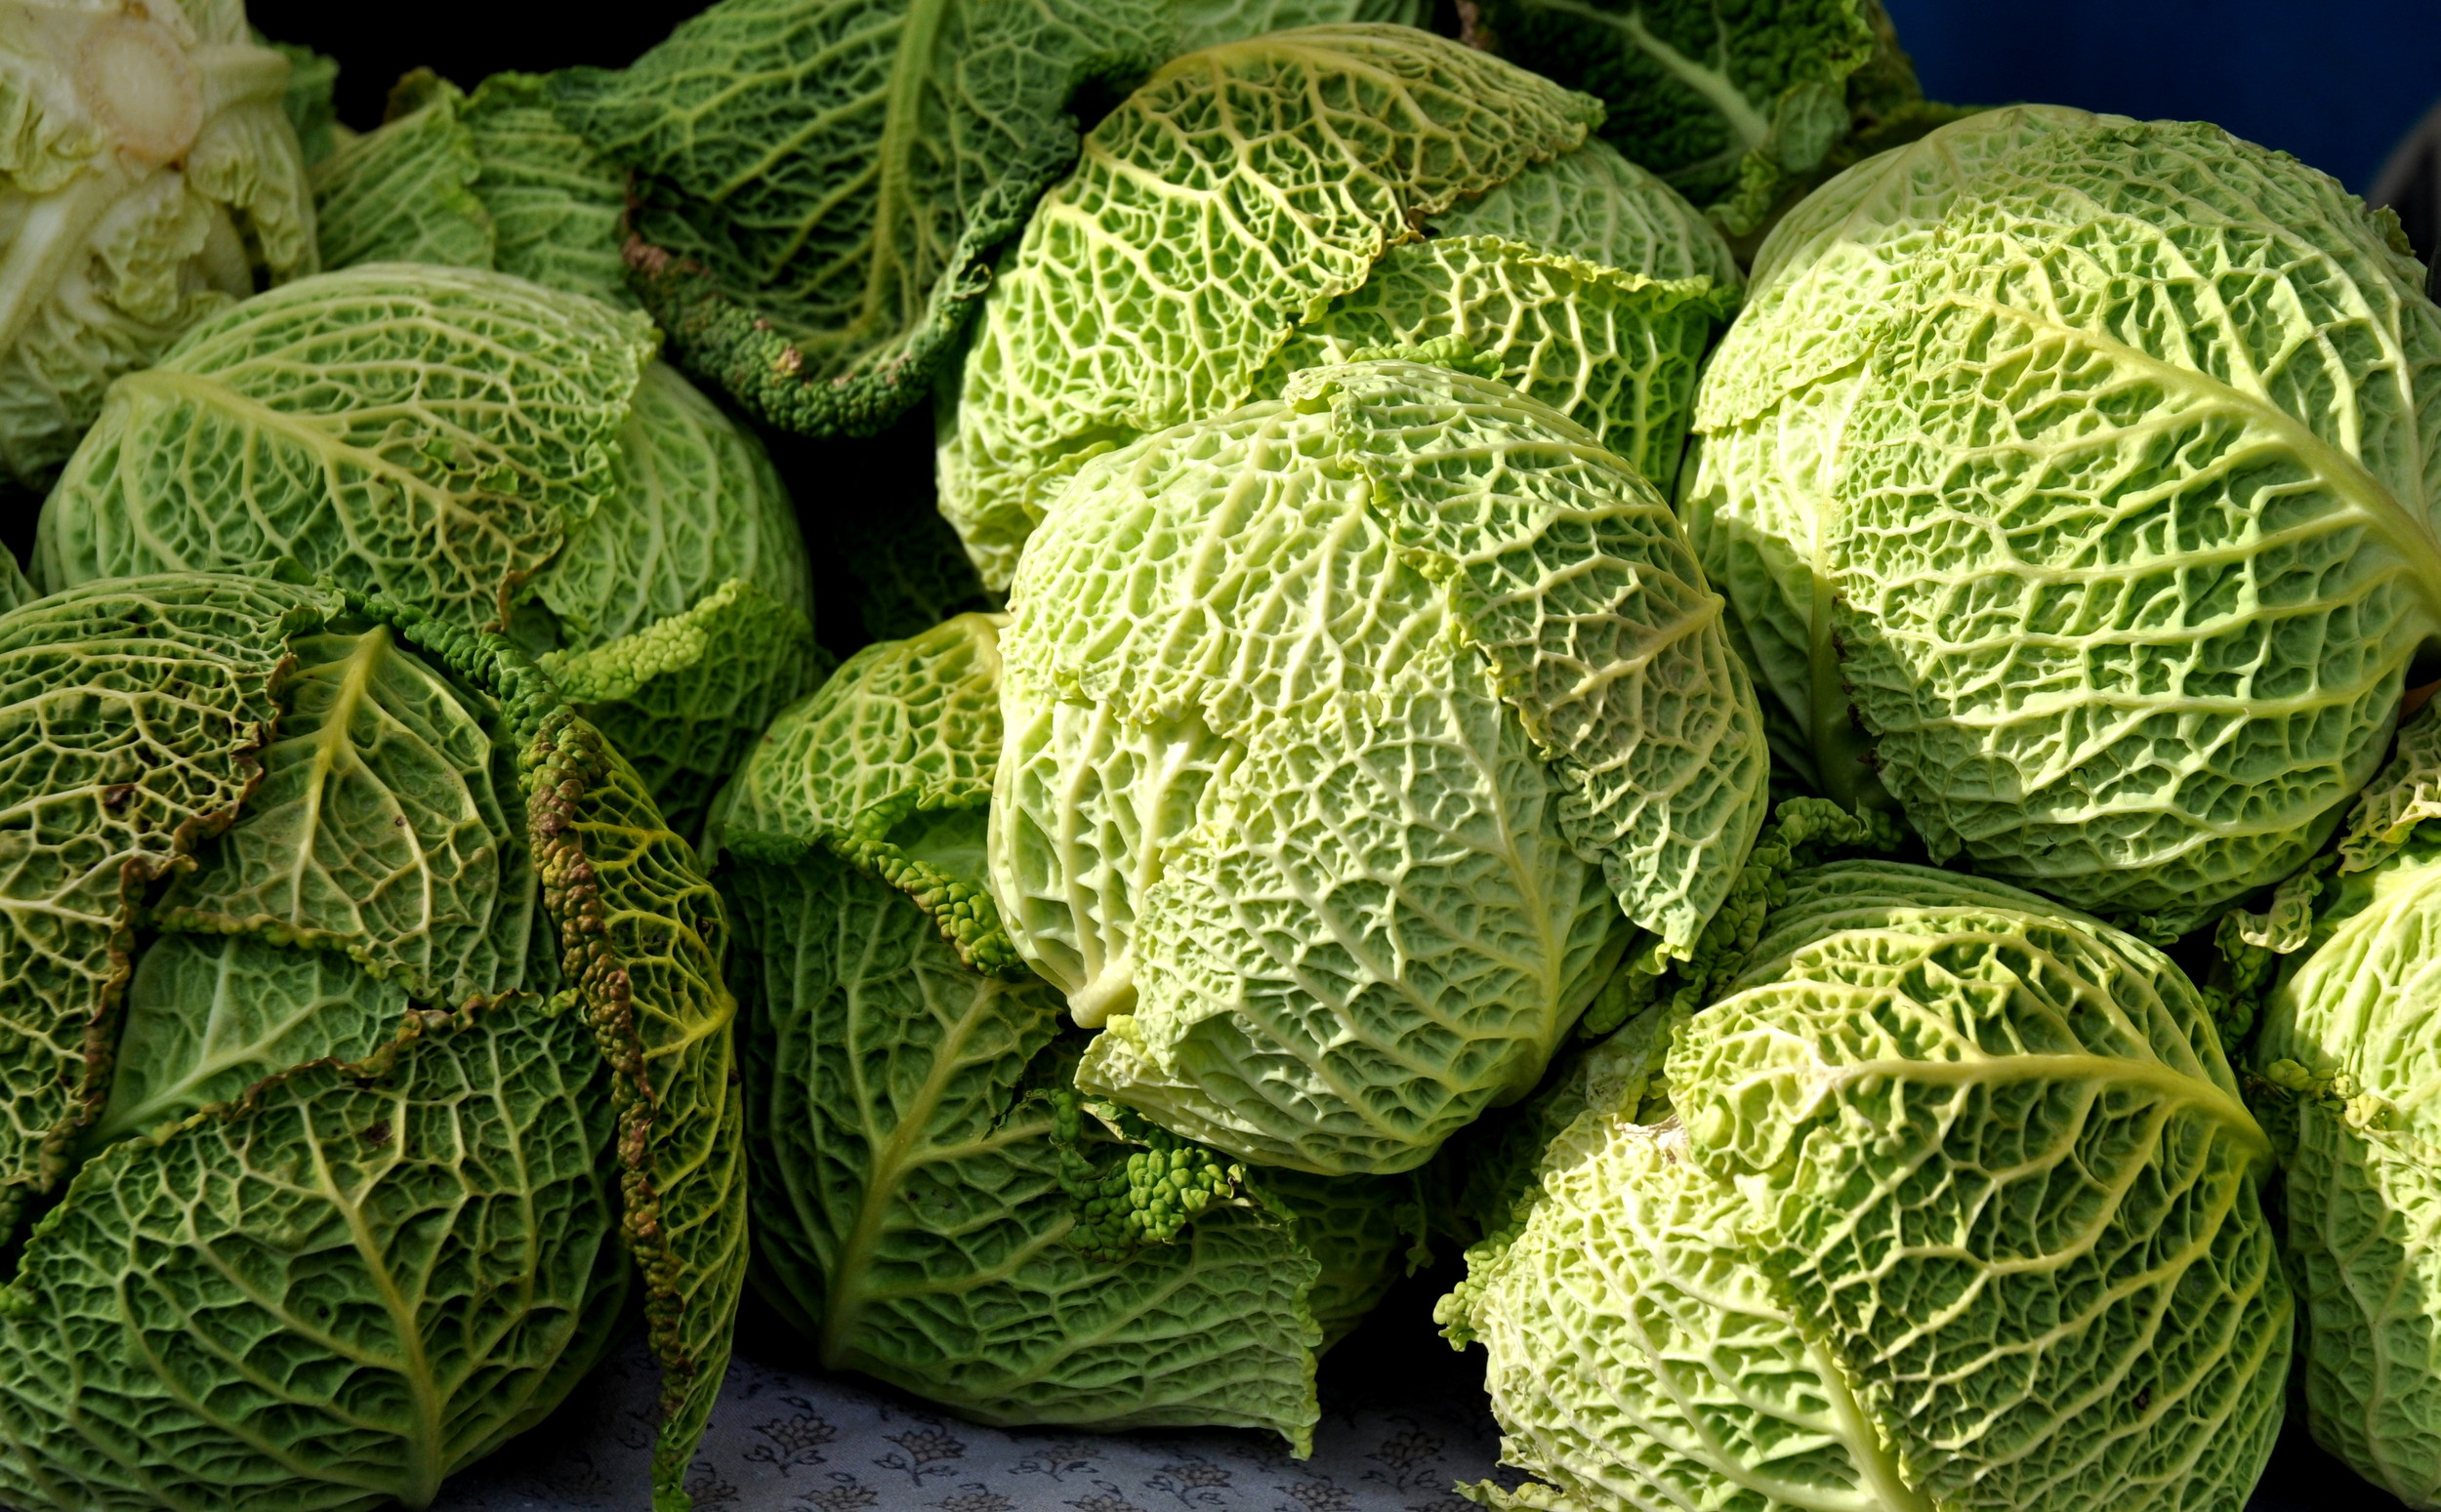 Over-winterd Savoy cabbages from Nash's Organic Produce. Photo copyright 2011 by Zachary D. Lyons.